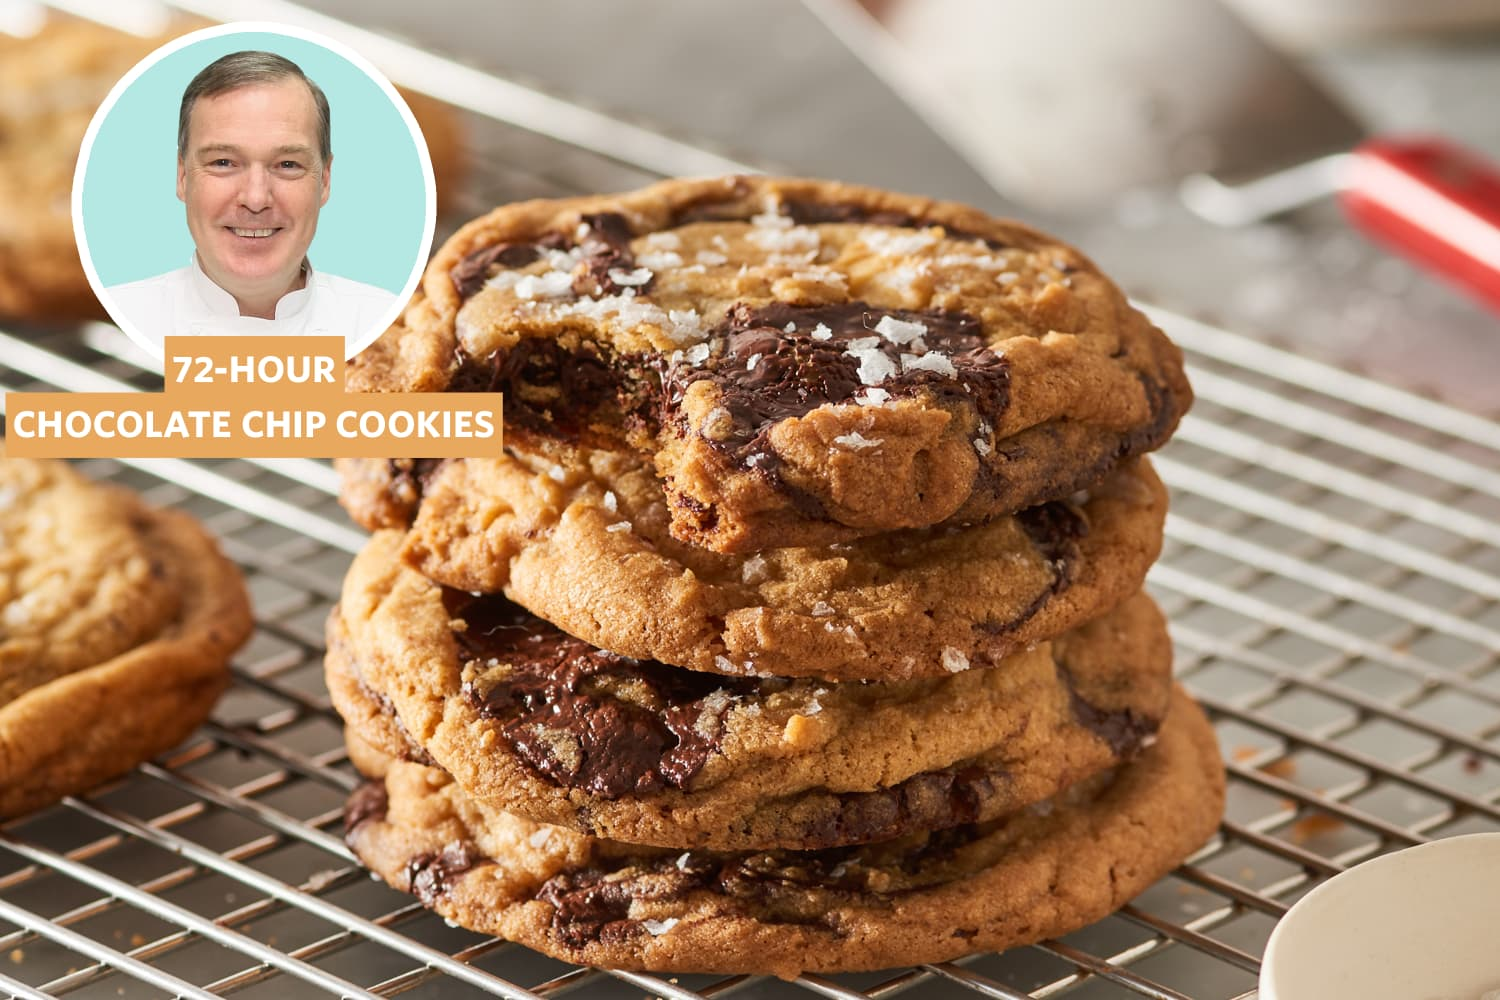 The Chocolate Chip Upgrade That Makes These Cookies Taste (and Look) Impossibly Good